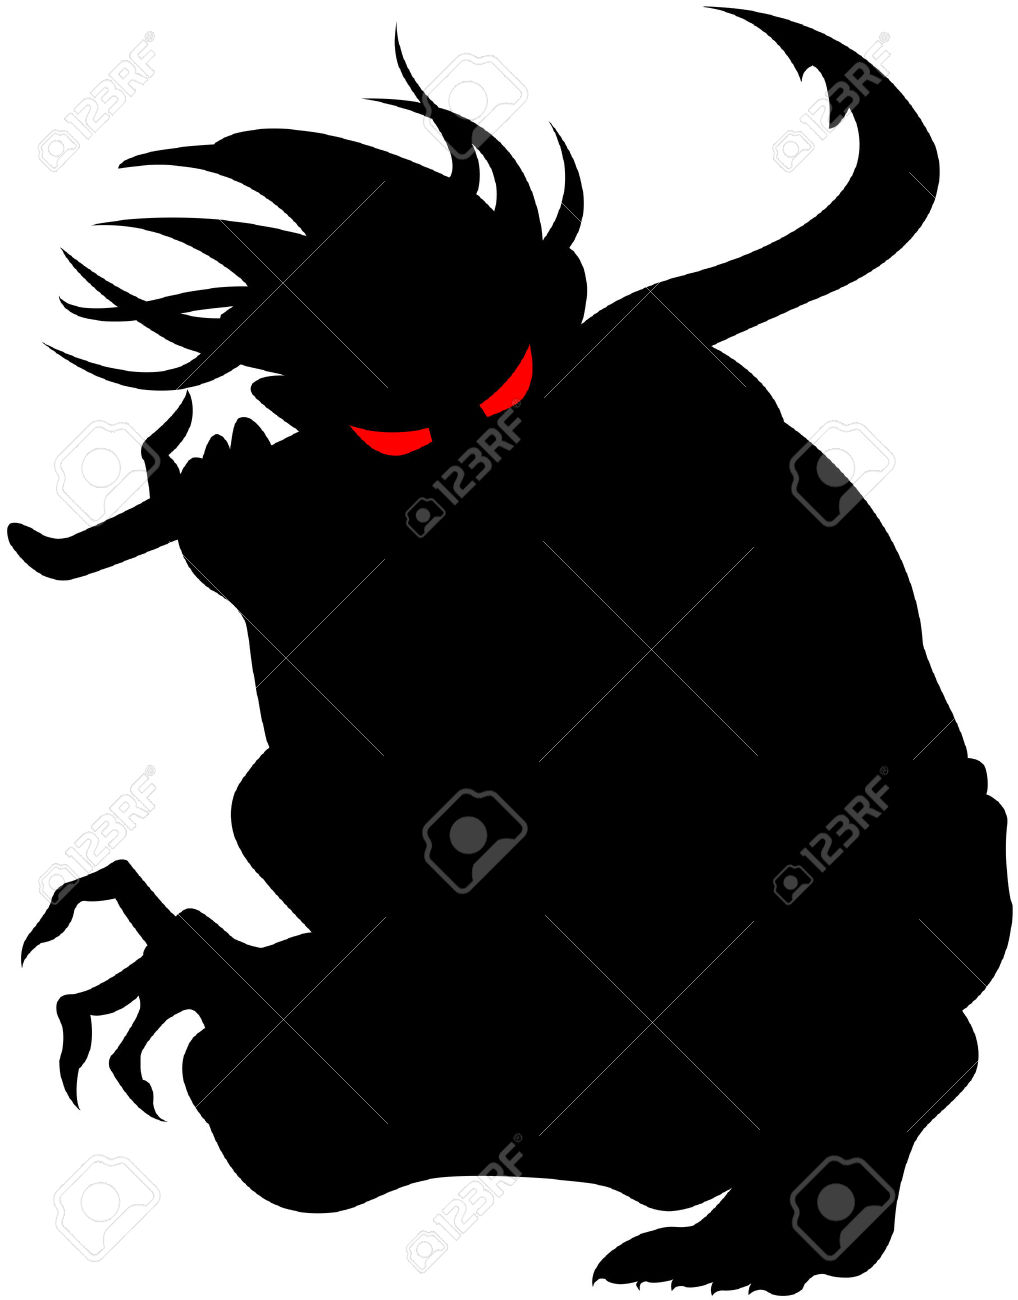 Vector Image Of Devil Silhouette, Isolated Royalty Free Cliparts.